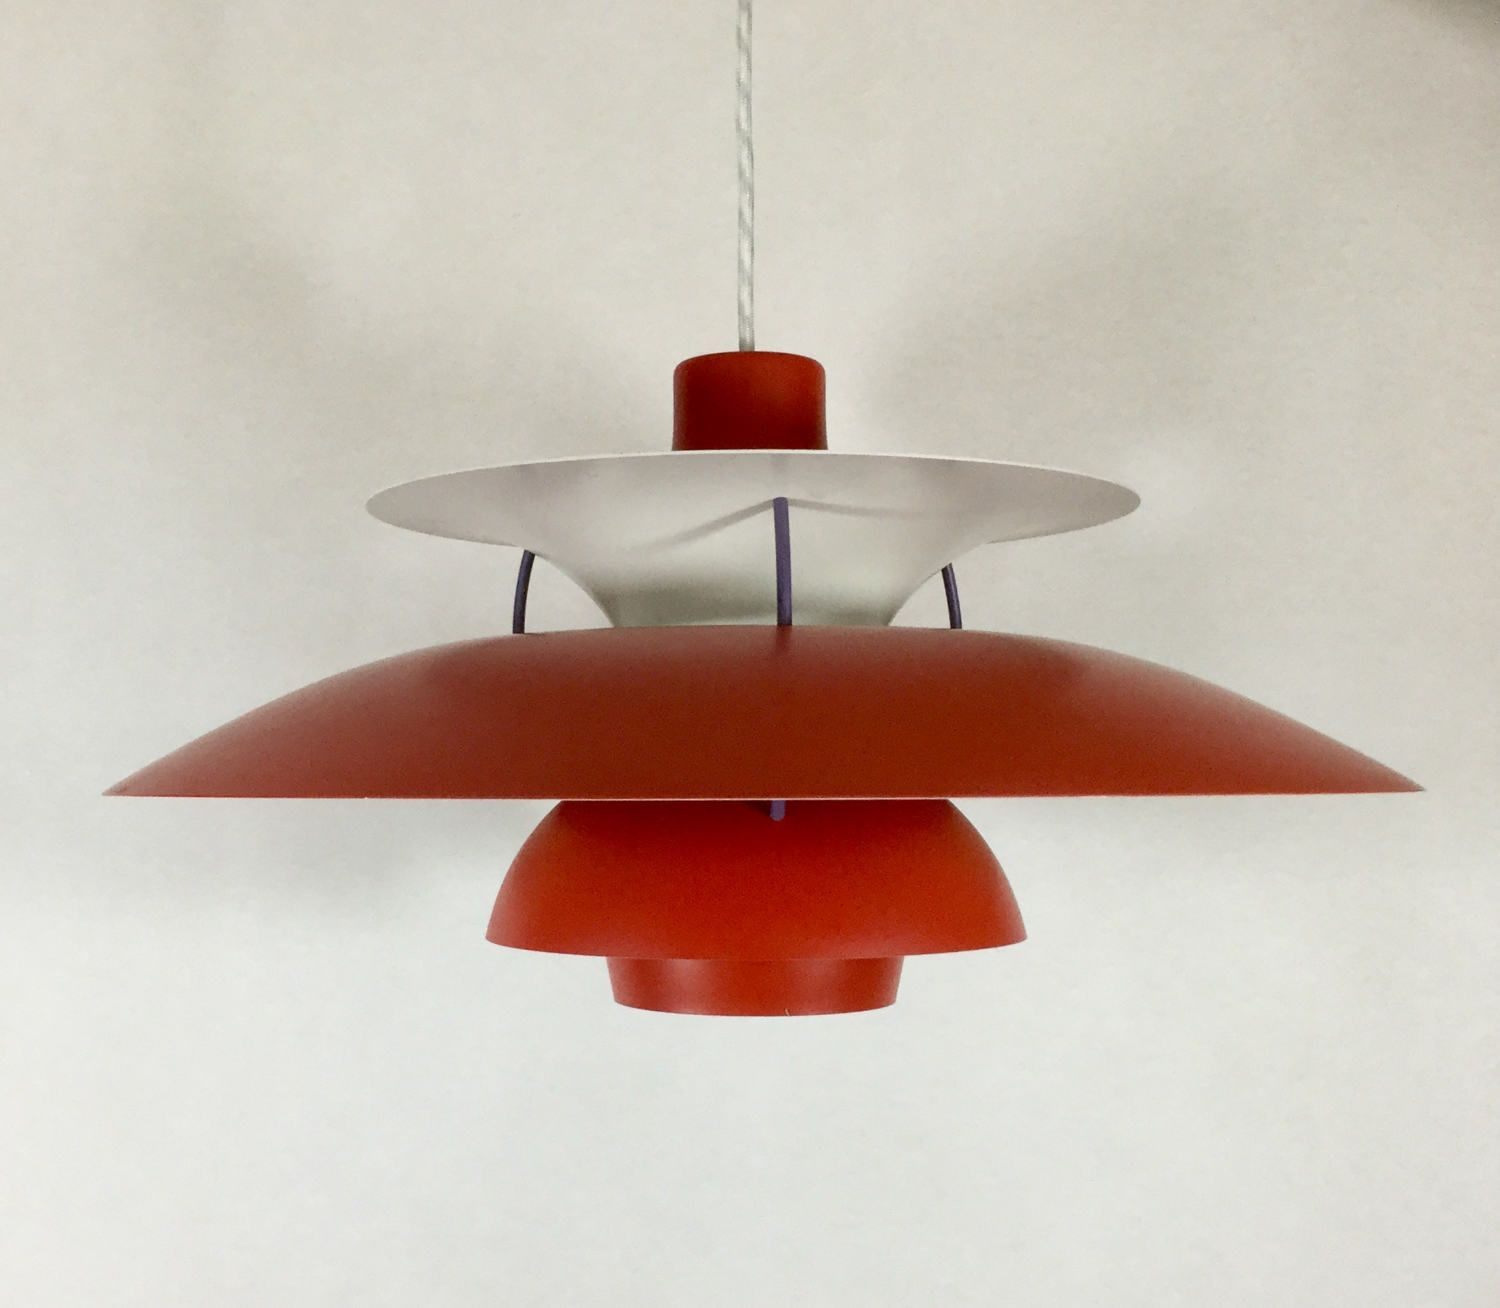 Original red danish ph5 pendant lamp light designed by poul original red danish ph5 pendant lamp light designed by poul henningsen produced by aloadofball Choice Image